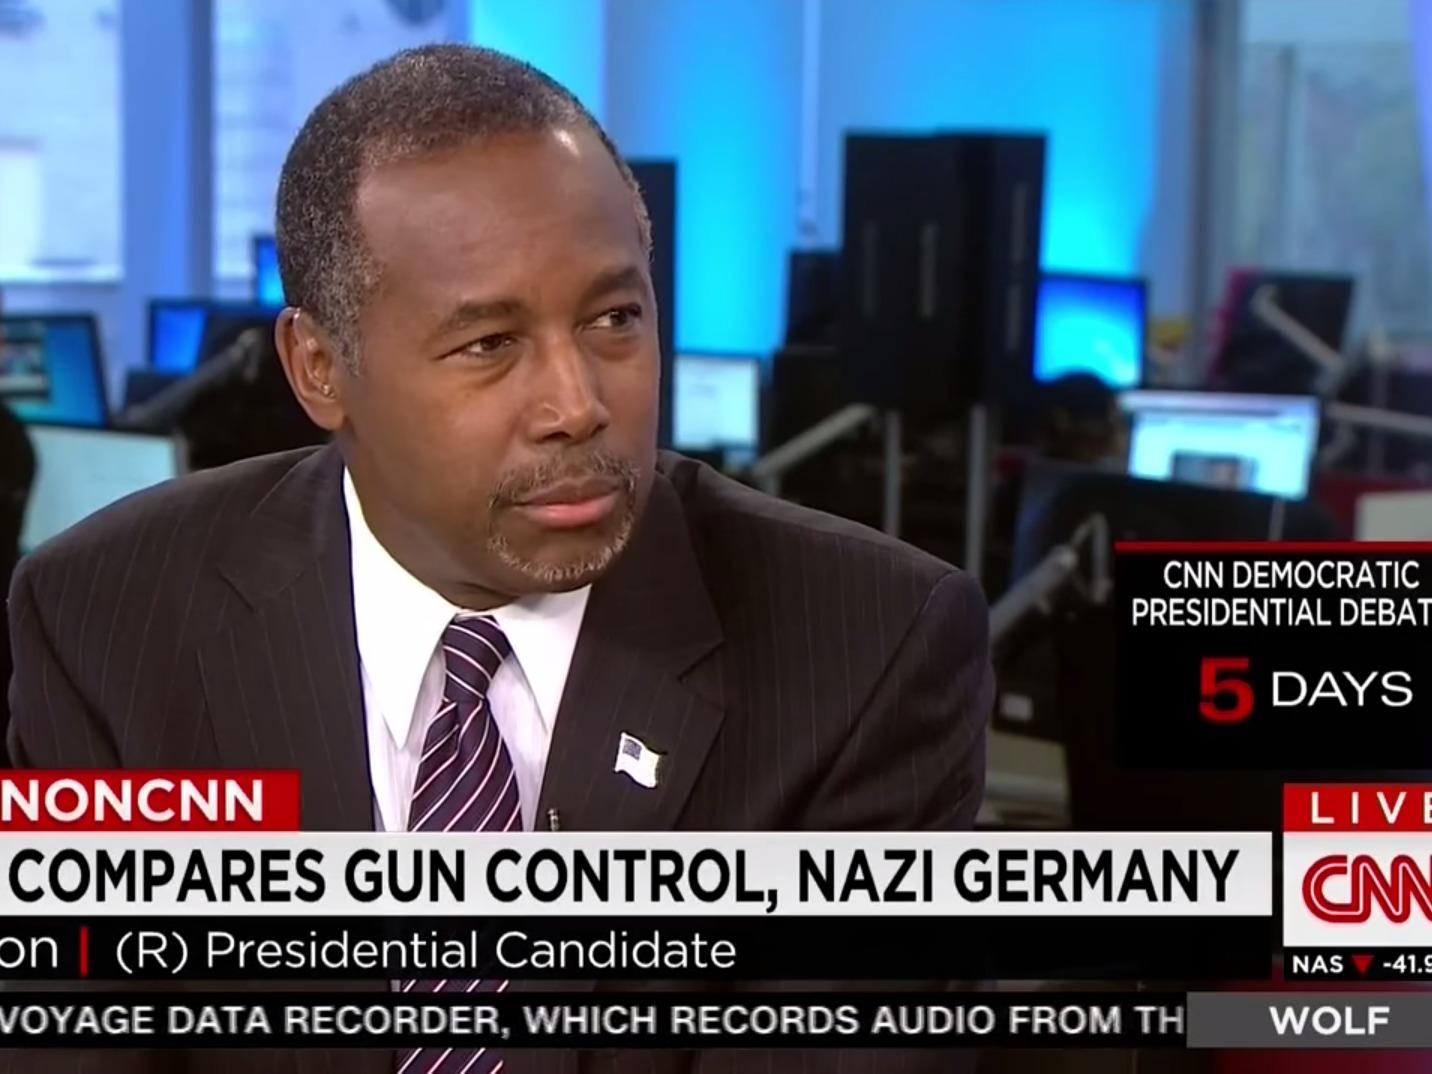 Ben Carson: Hitler may have been stopped if the German public were armed